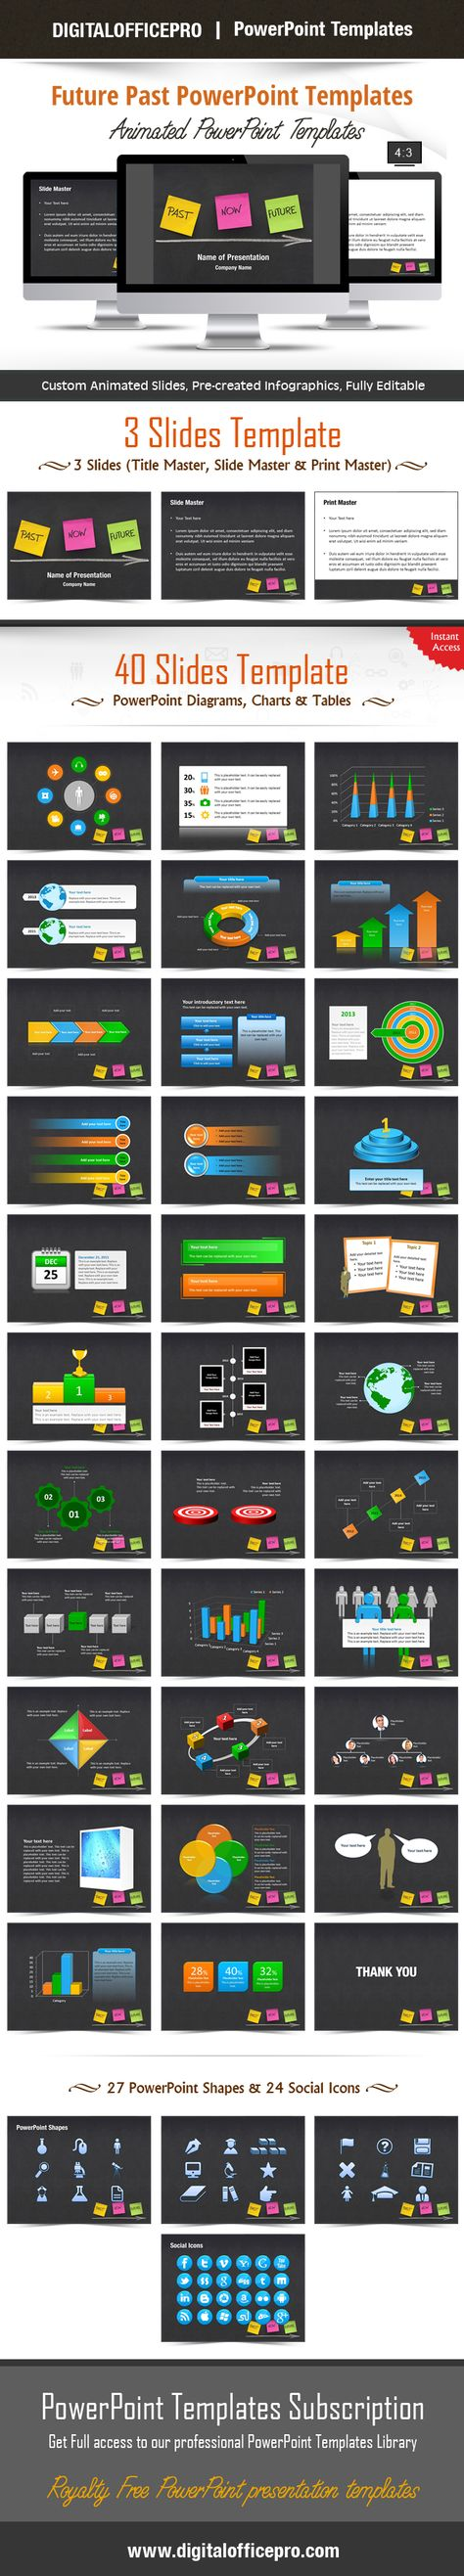 Future Past Powerpoint Templates Come With A Set Of Powerpoint Diagram.